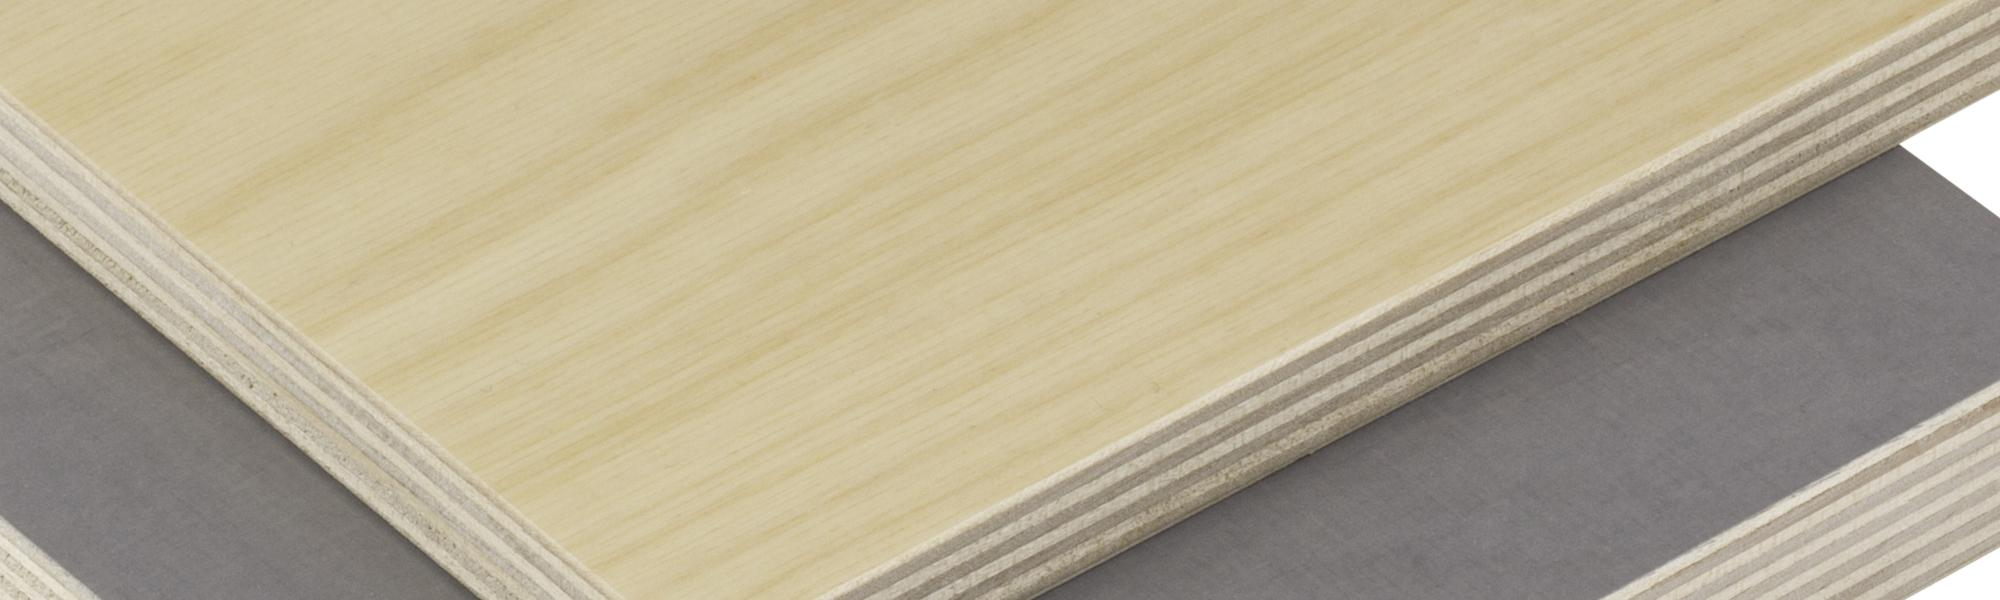 Two sheets of stacked plywood.